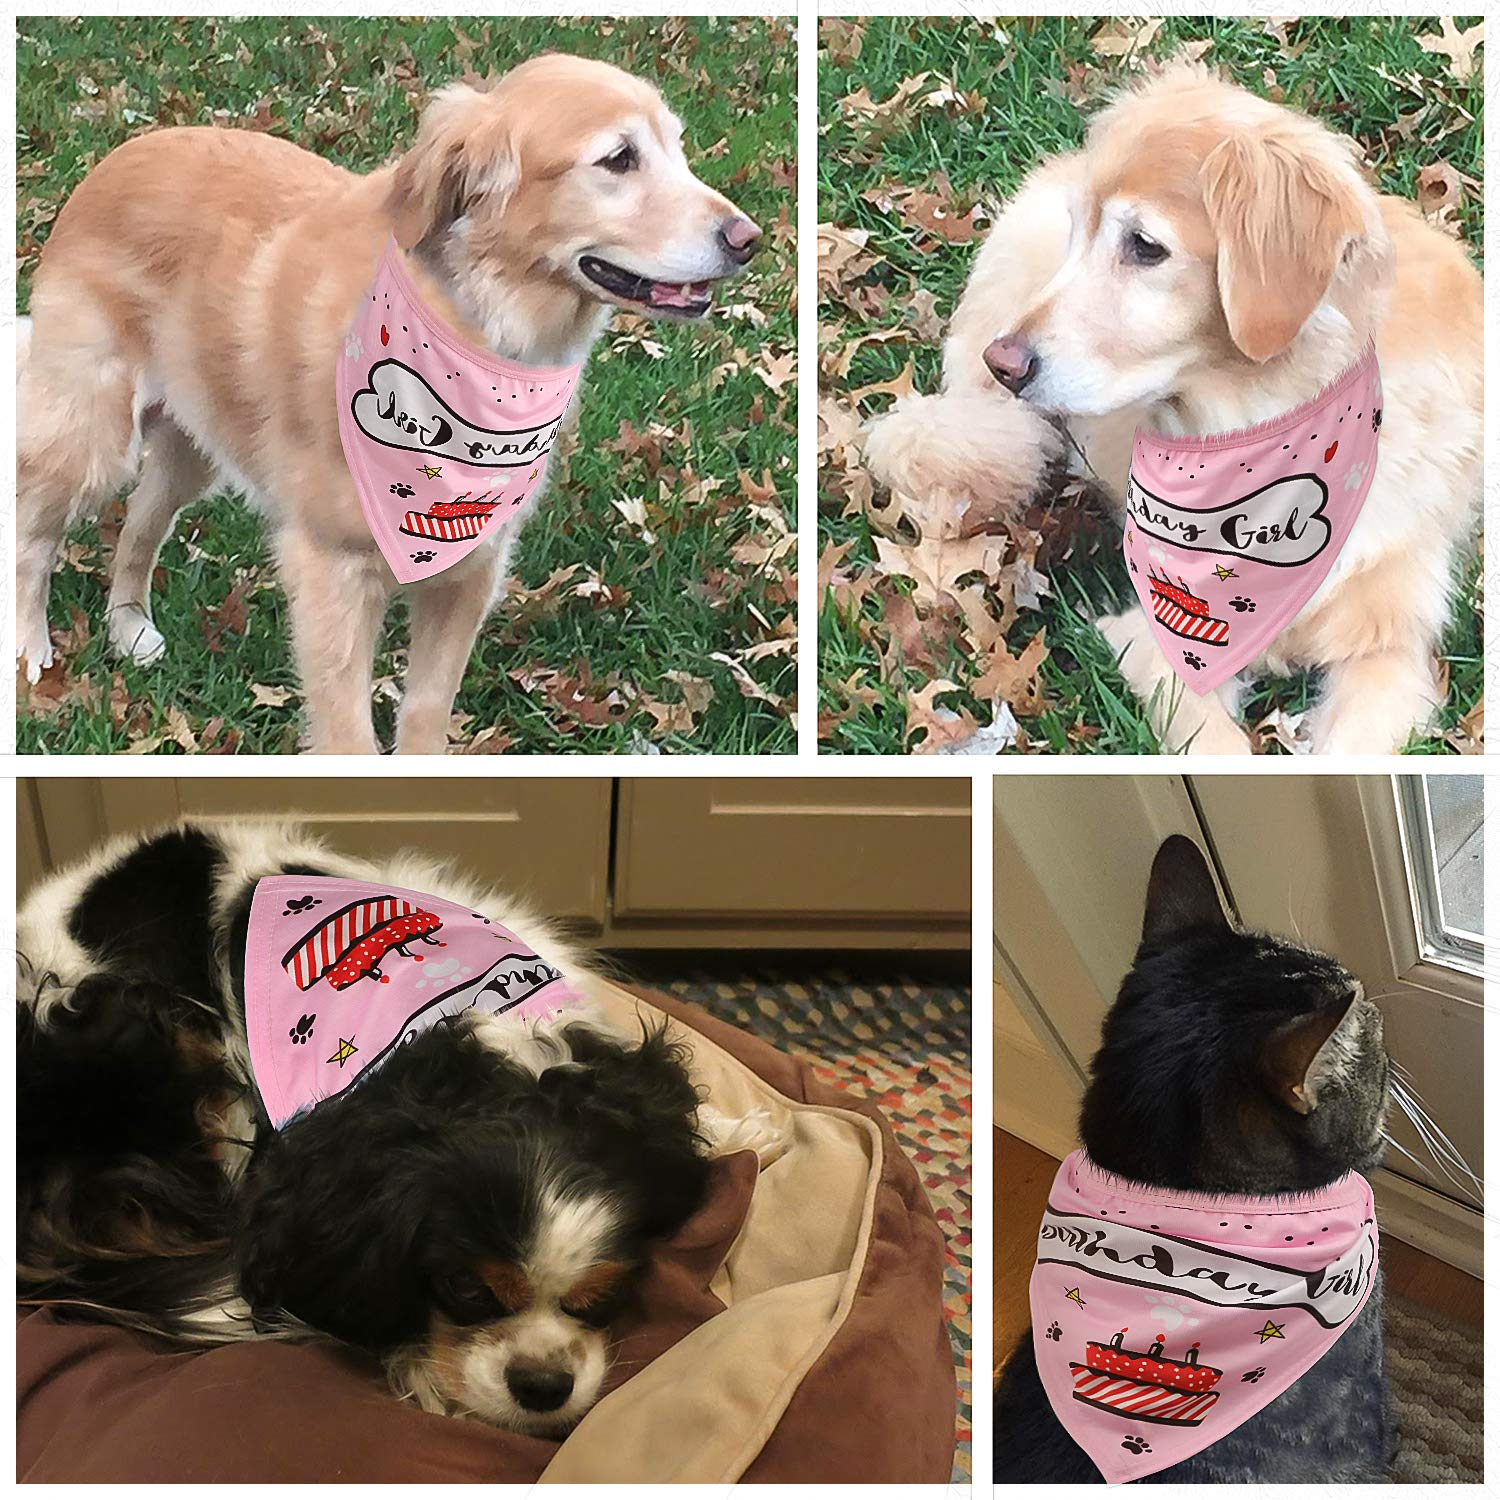 Pink Great Puppy Dog Birthday Outfit VIPITH Dog Birthday Bandana Gift and Party Decoration Set Triangle Cotton Dog Scarf with Cute Doggie Birthday Party Hat